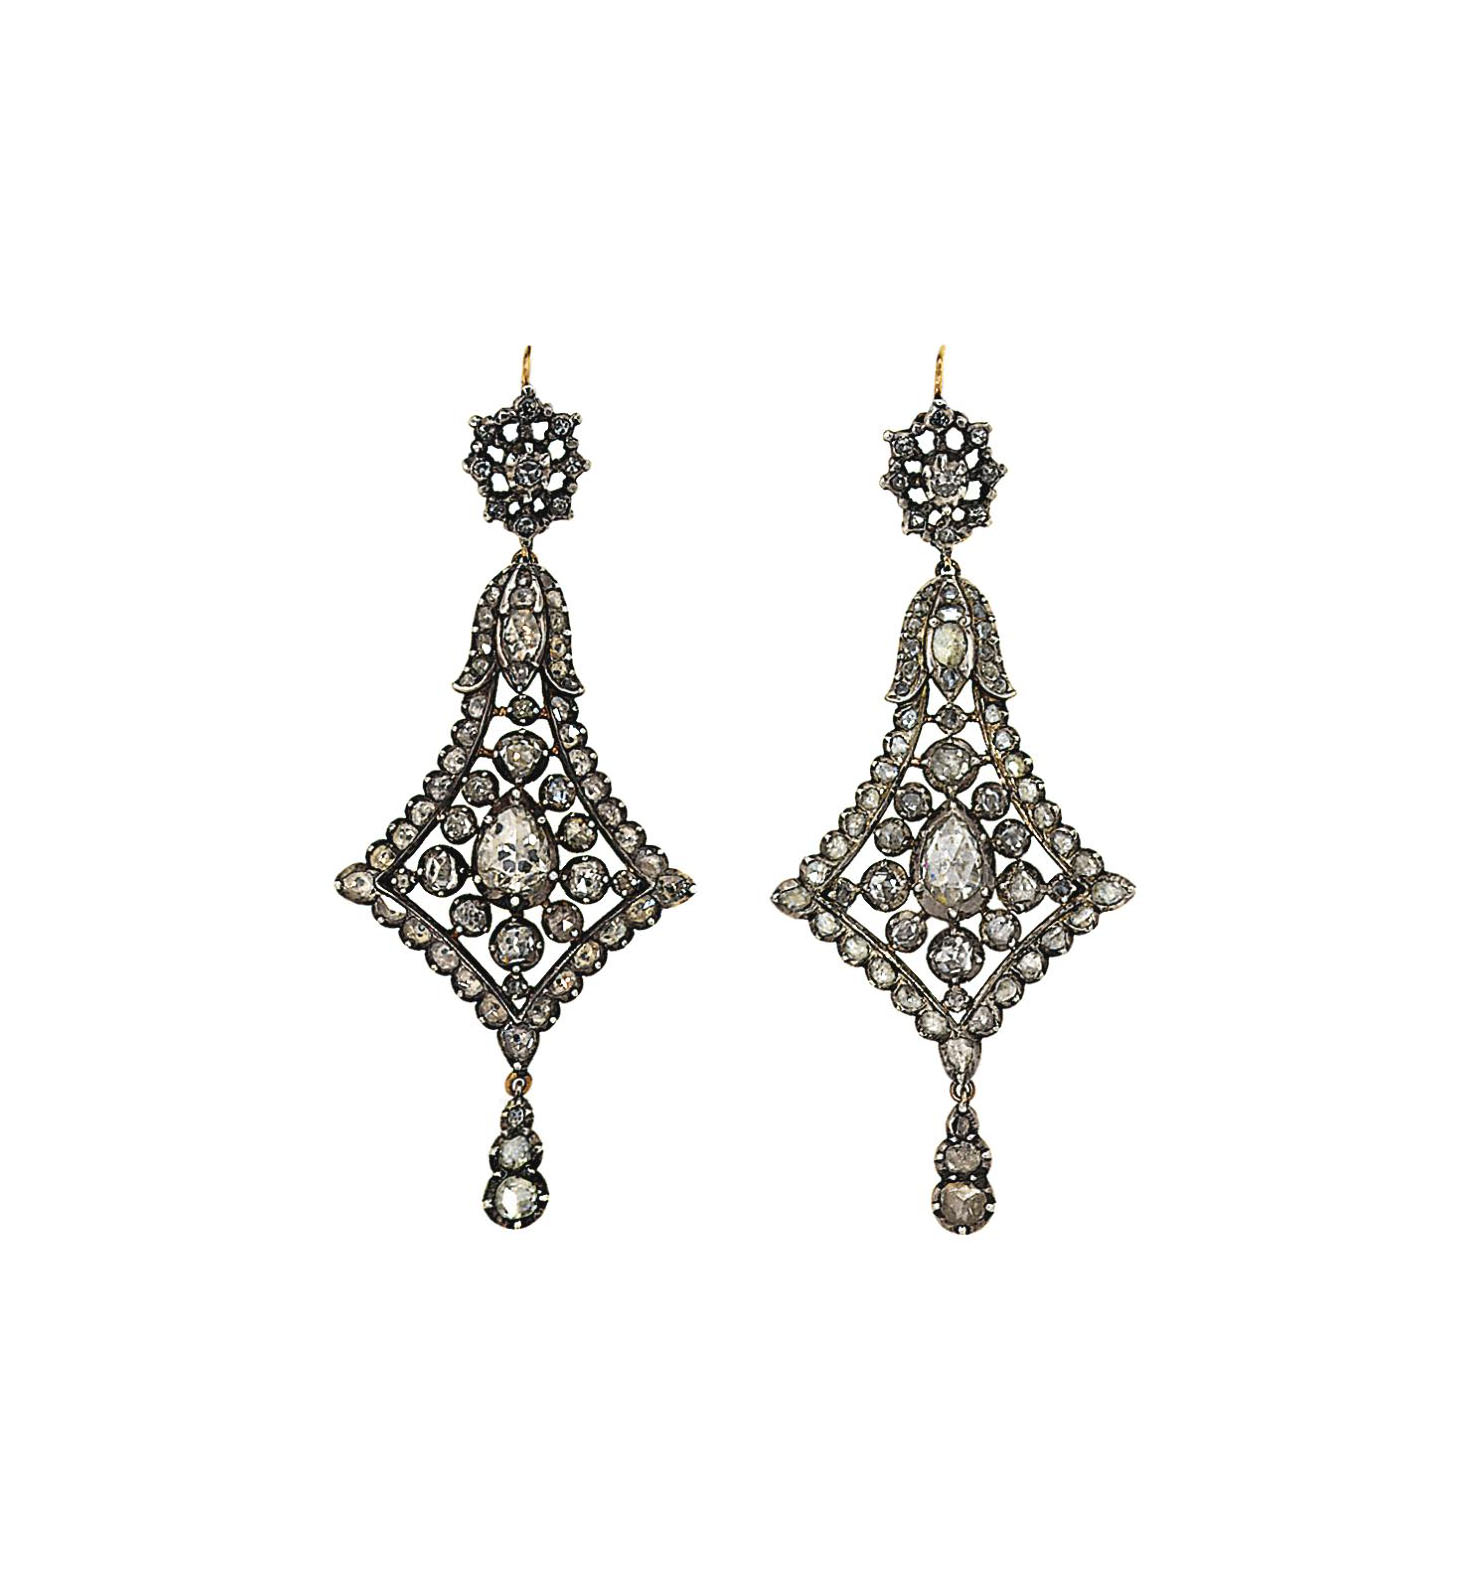 A pair of early 19th century d